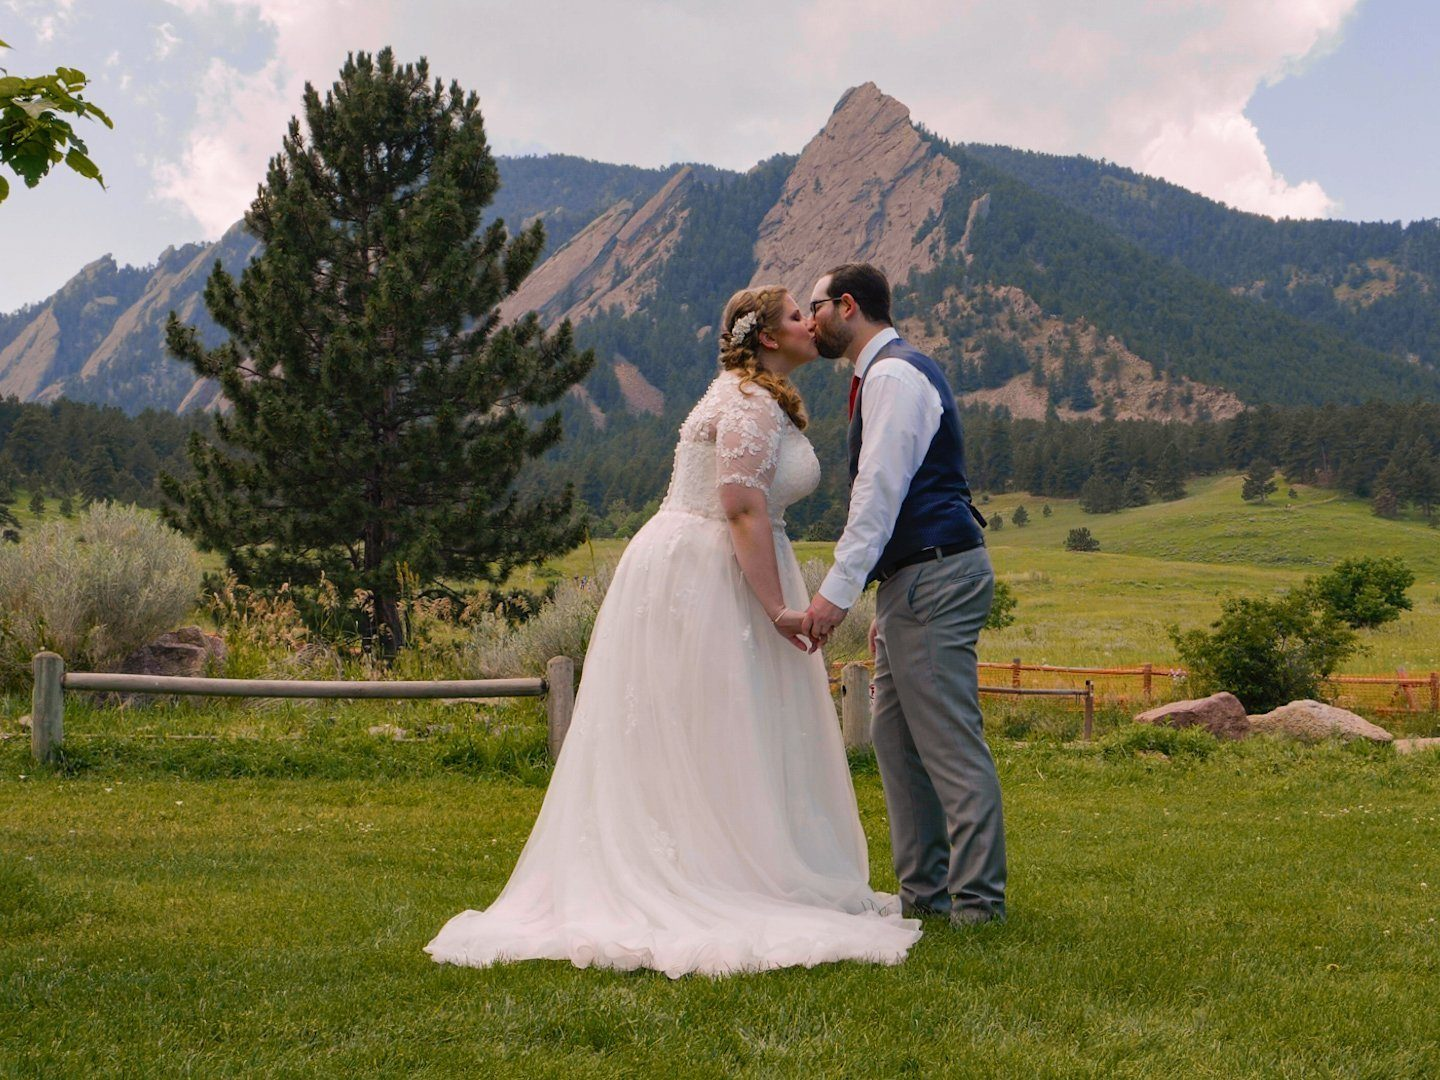 Michael & Christine at Lionscrest Manor, Lyons, CO